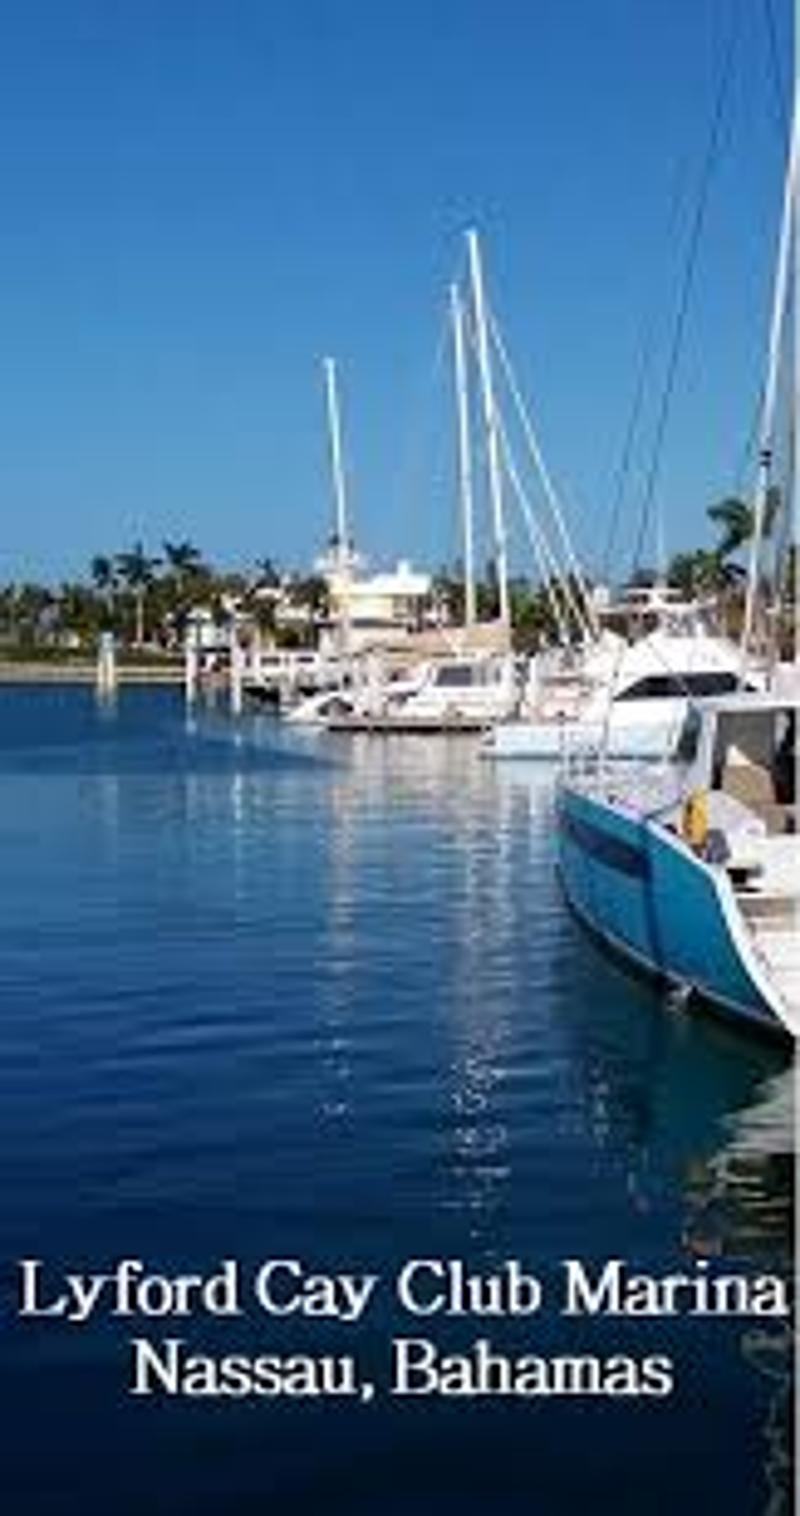 1556781421138_Lyford_Cay_Club_Marina_2.jpeg